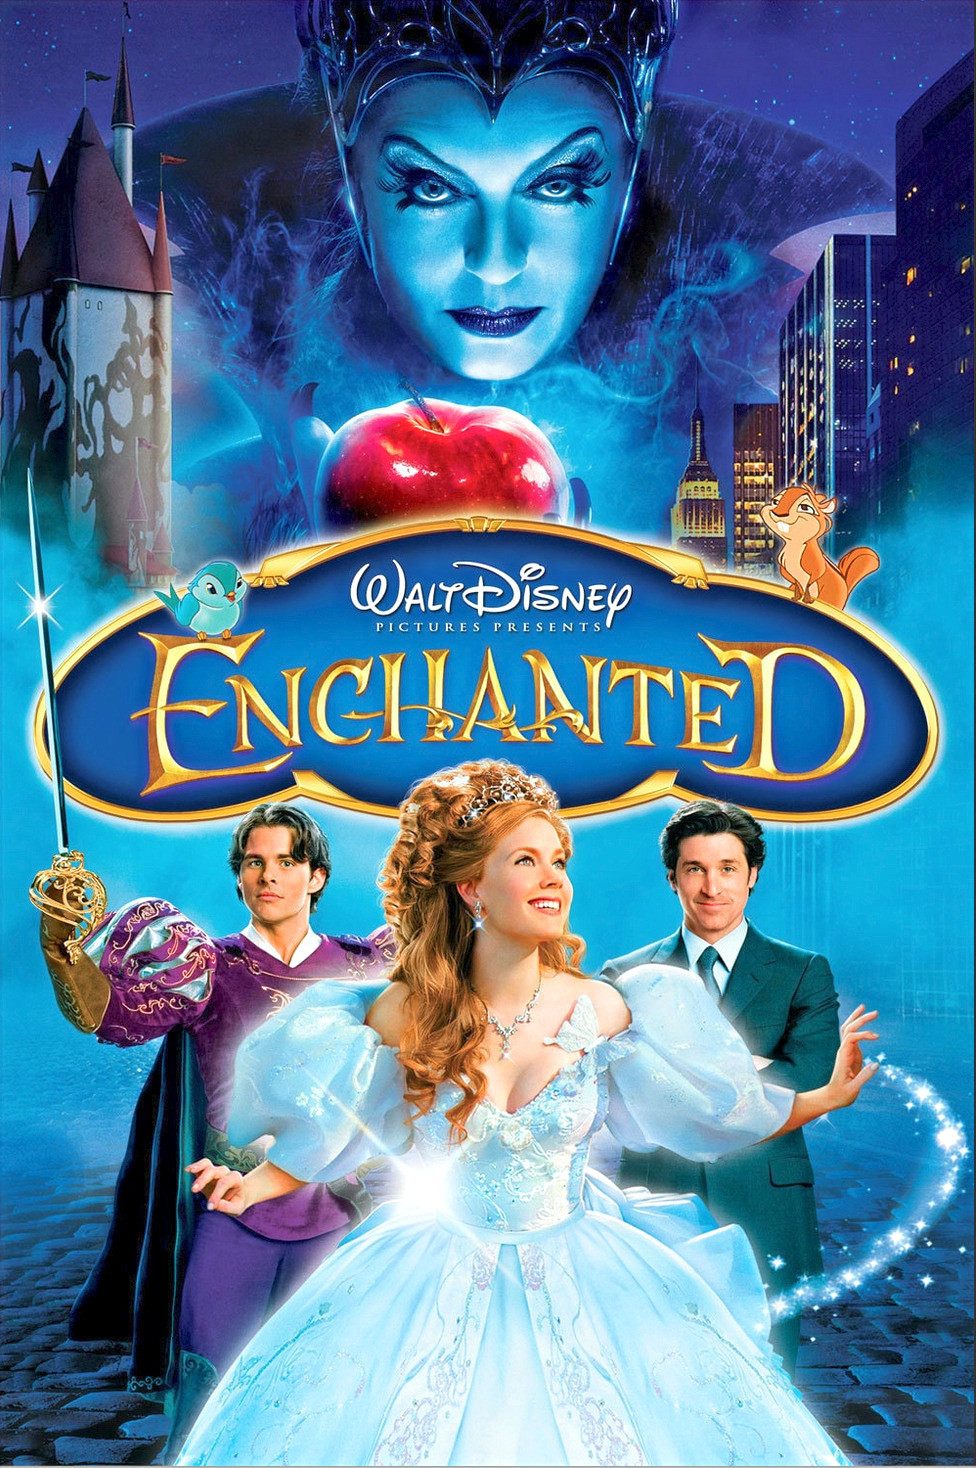 Movie poster Walt Disney Enchanted with evil queen and Giselle and her two princes